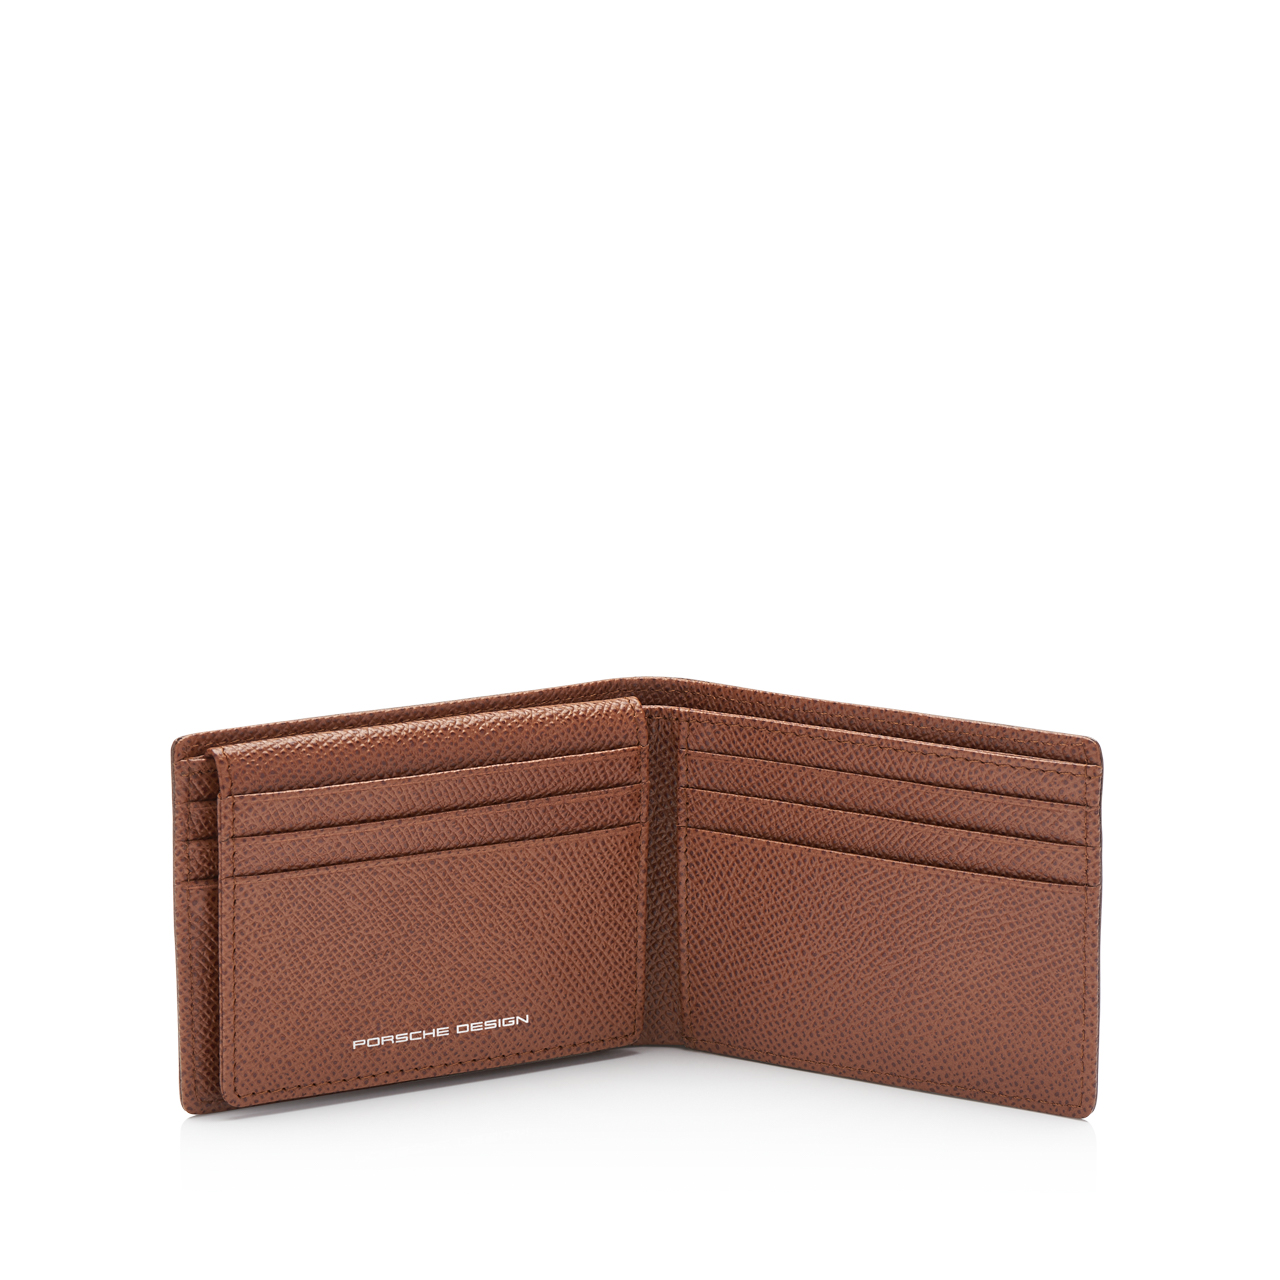 French Classic 3.0 Wallet H9